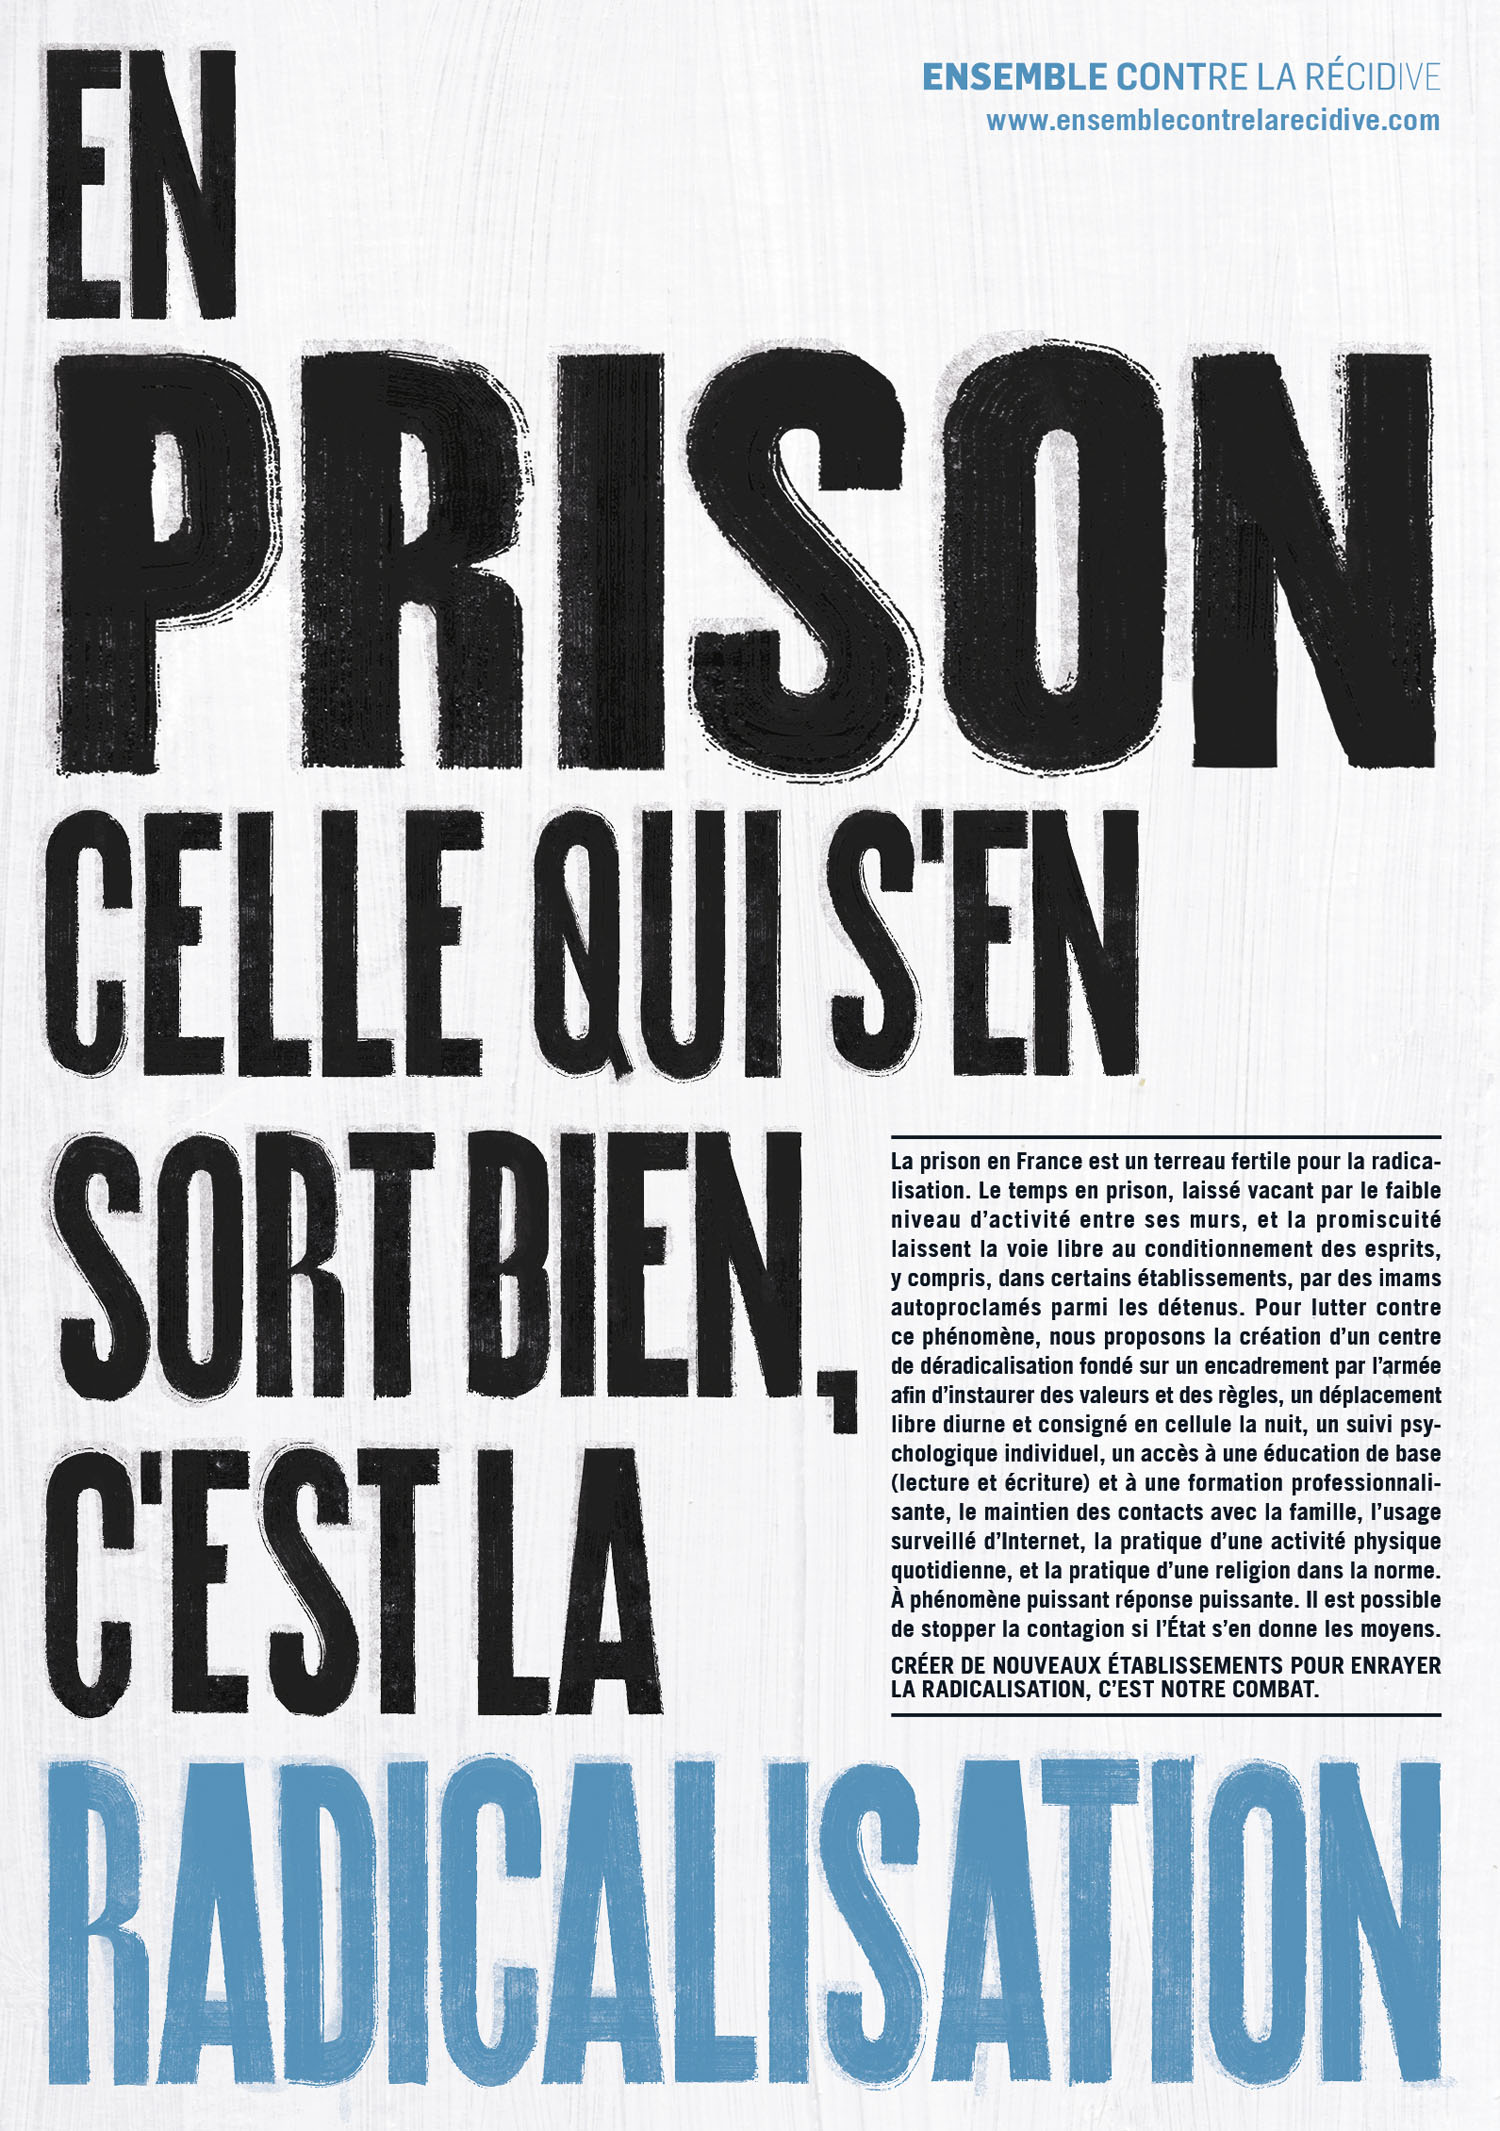 ensemble-contre-la-recidive-pierre-botton-prison-lutte-publicite-marketing-2016-agence-betc-3